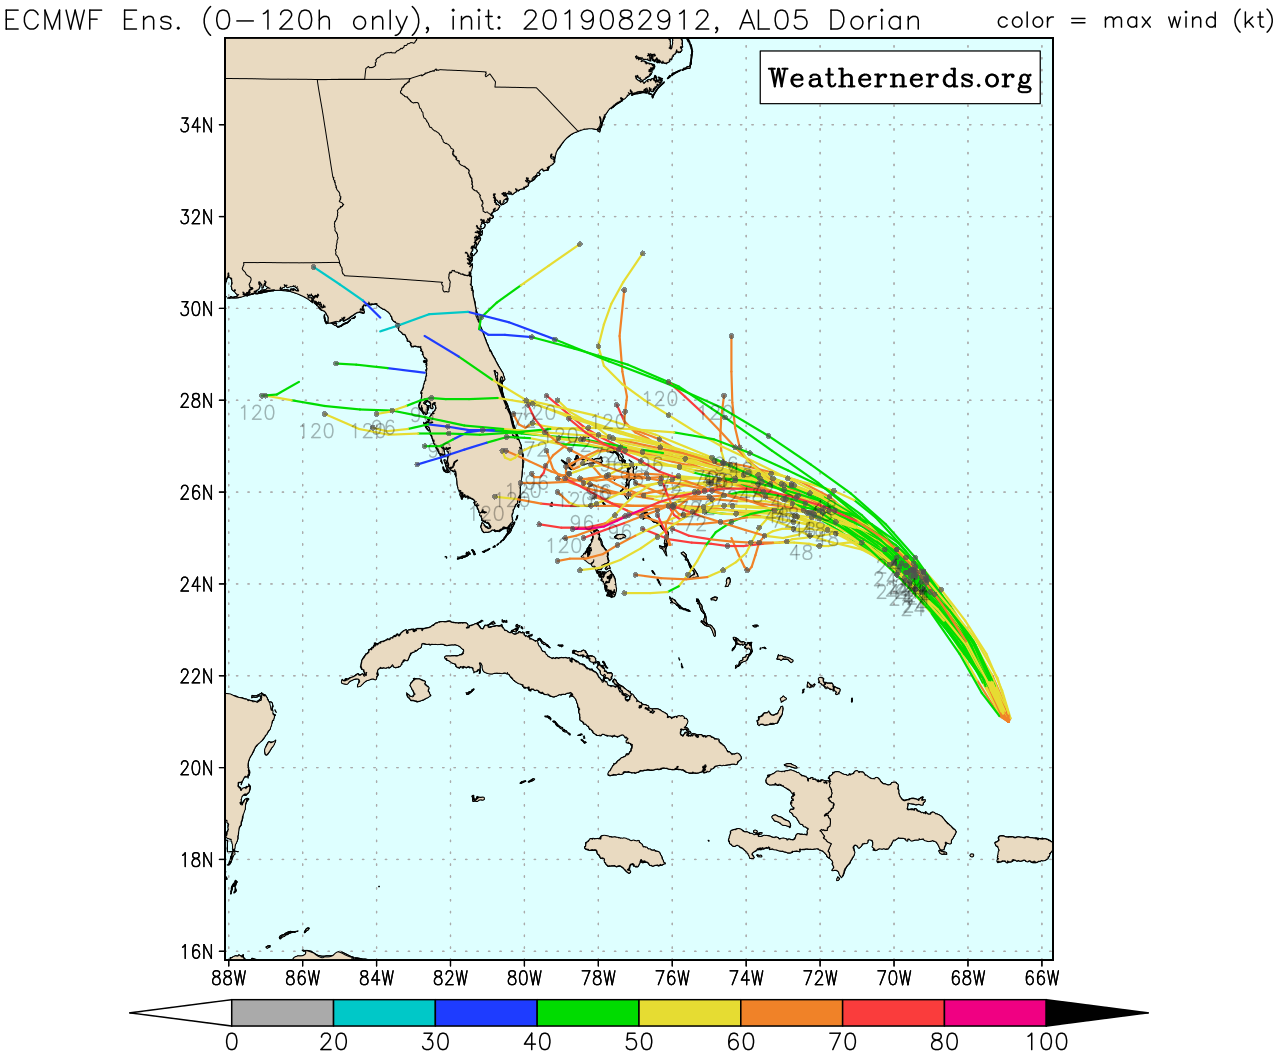 12z ensemble output for the Hurricane Dorian.